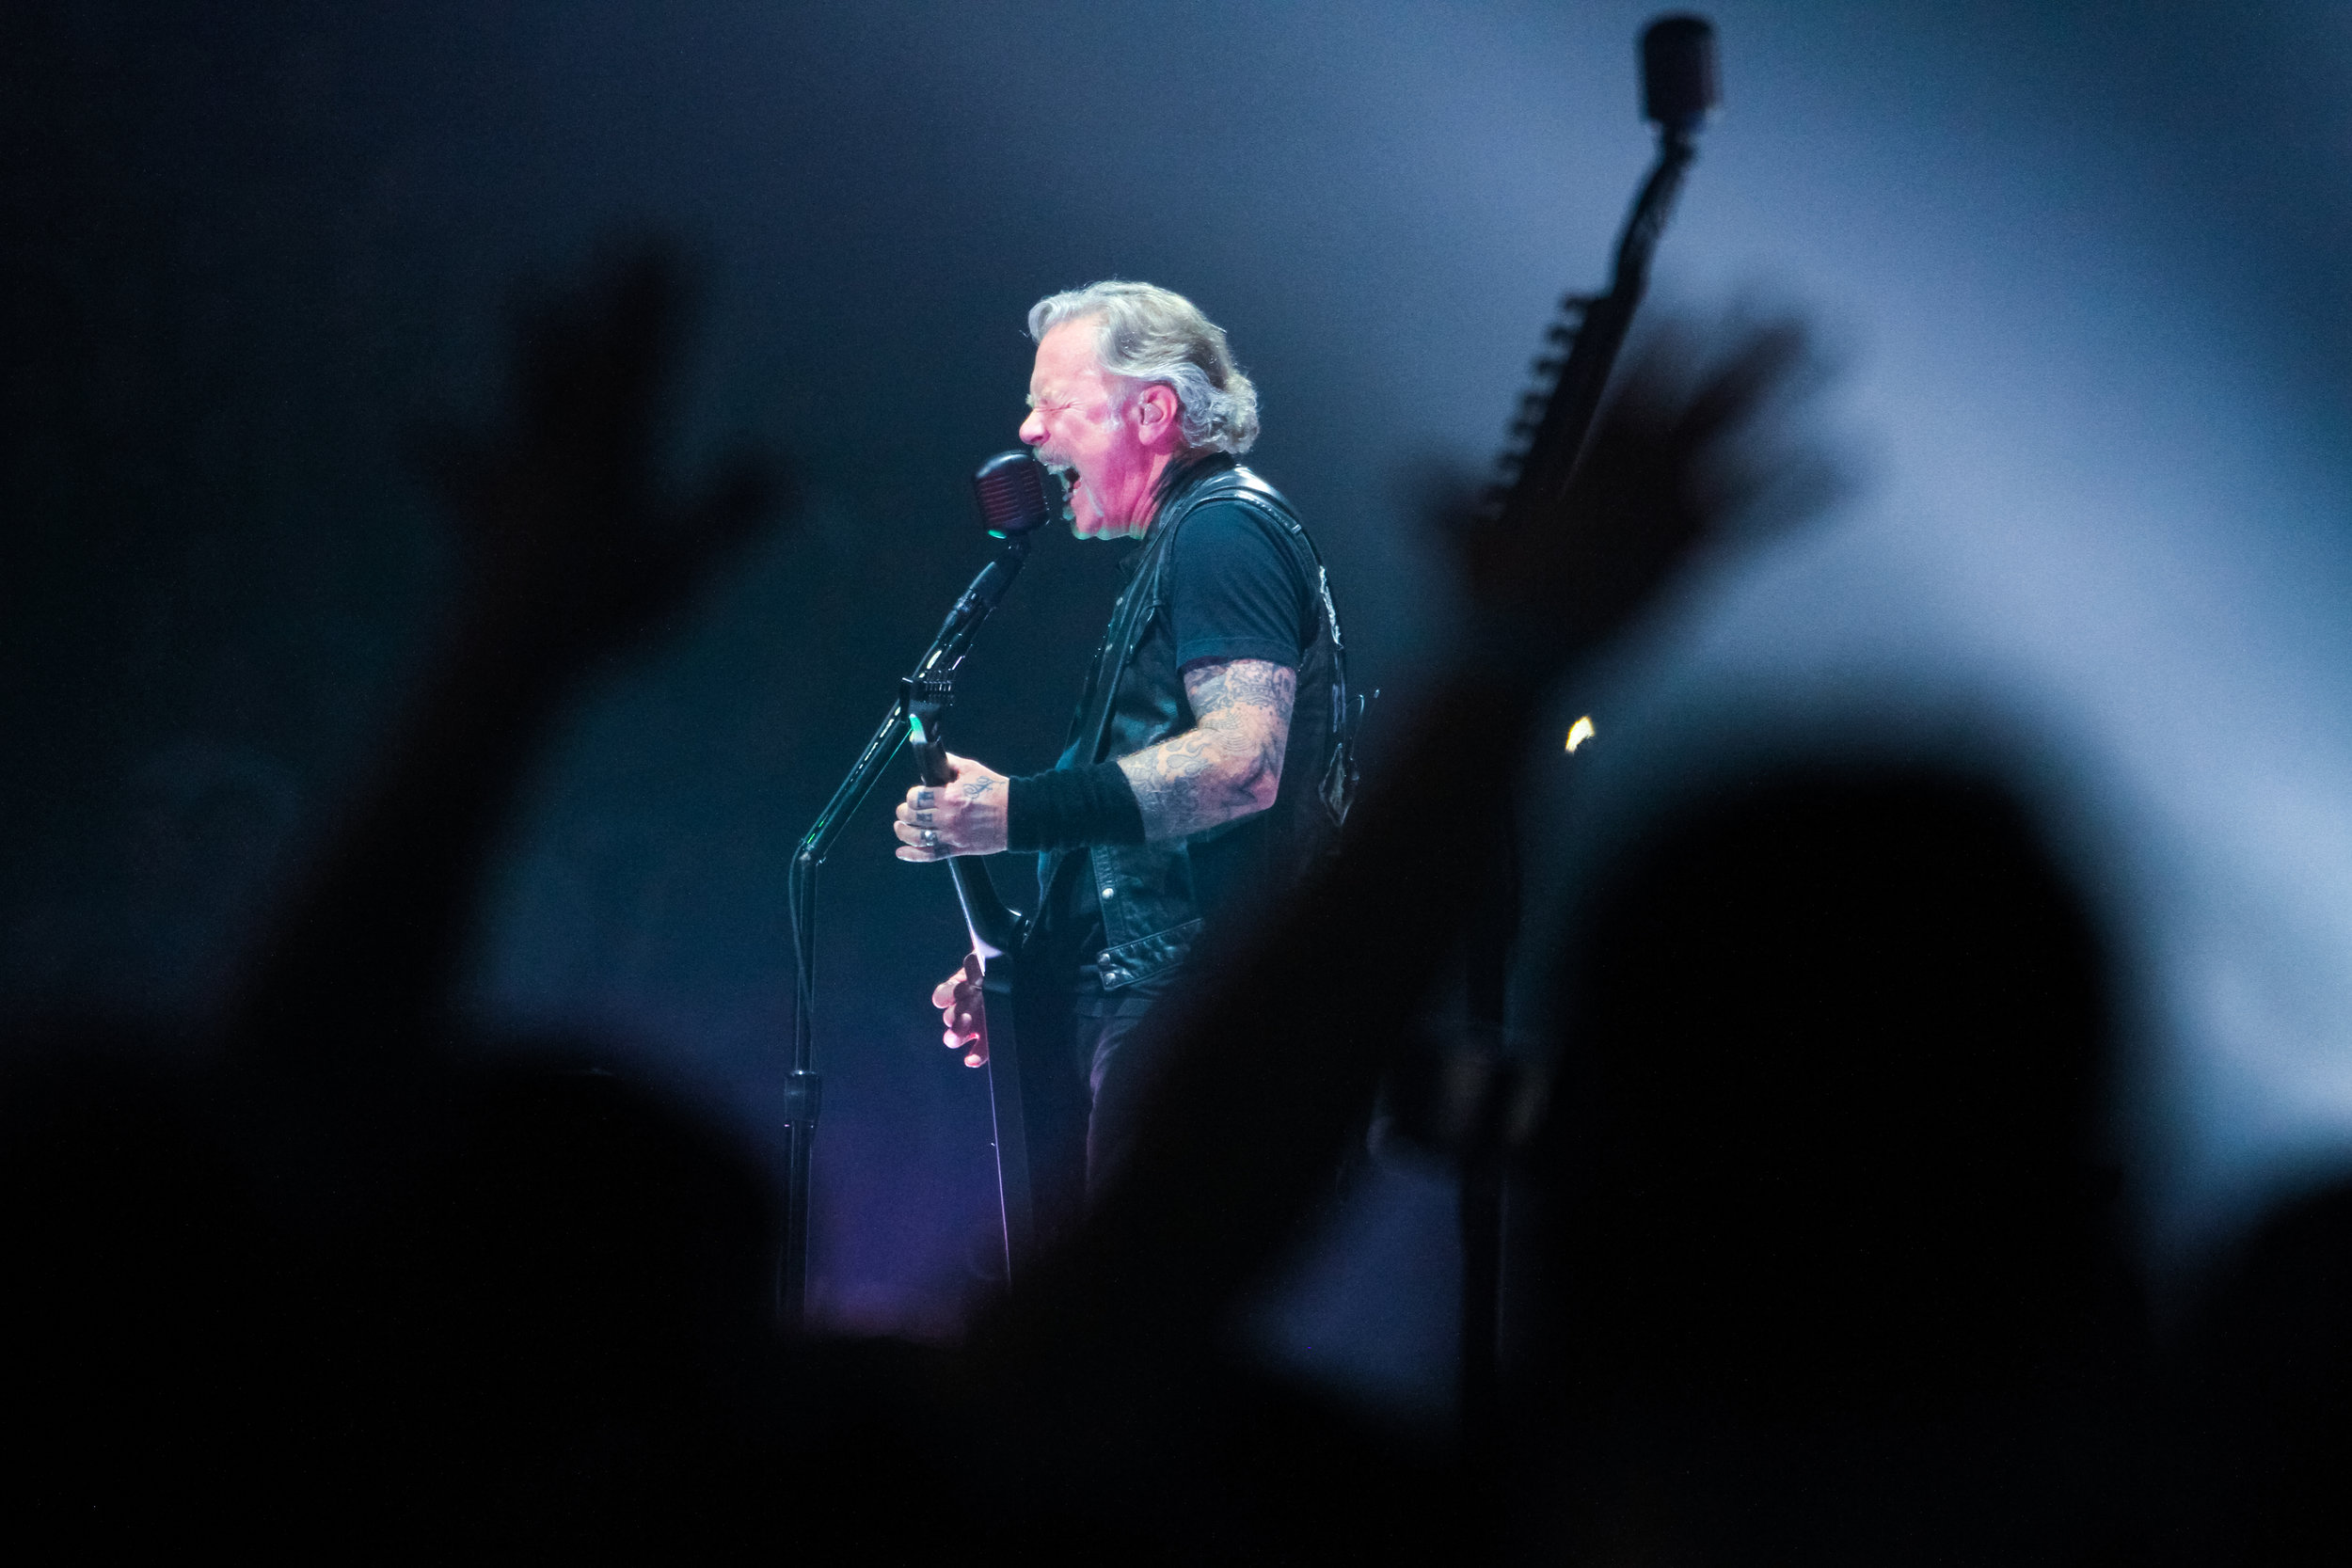 James Hetfield/Metallica - 2019